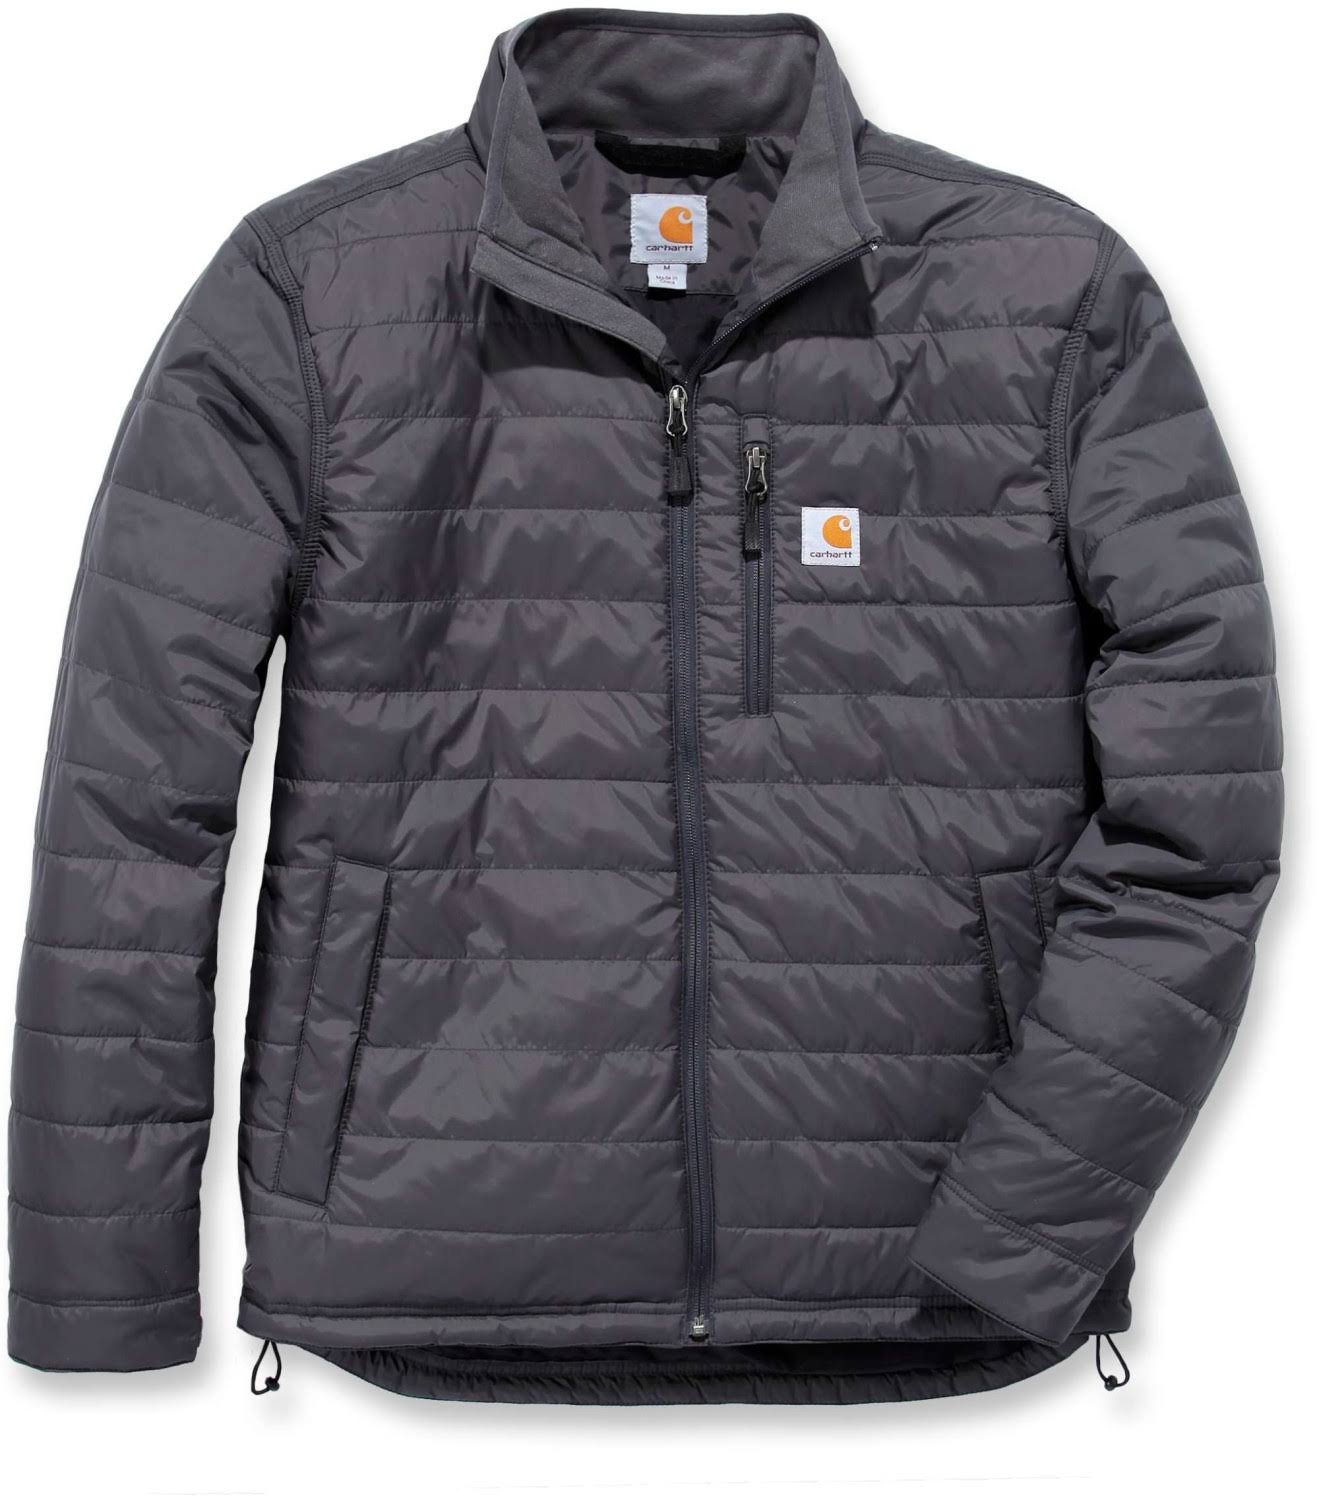 Carhartt Men's Gilliam Jacket - Shadow